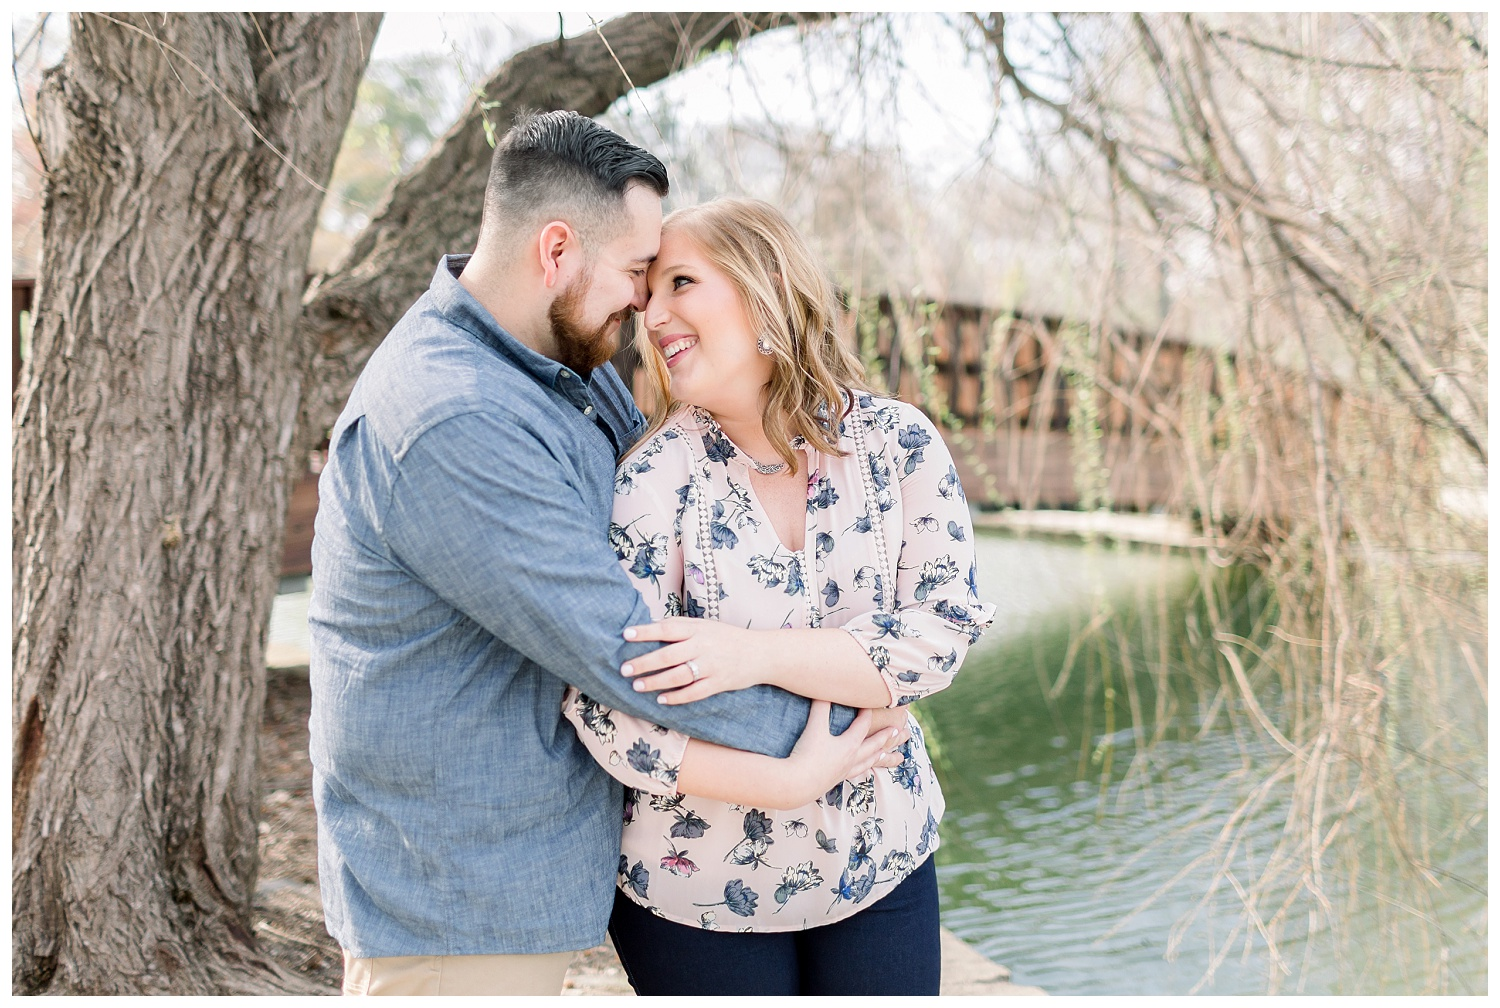 Engagement-Photos-at-Loose-Park-Springtime-KC-Elizabeth-Ladean-Photography_A+D-0407--_6873.jpg